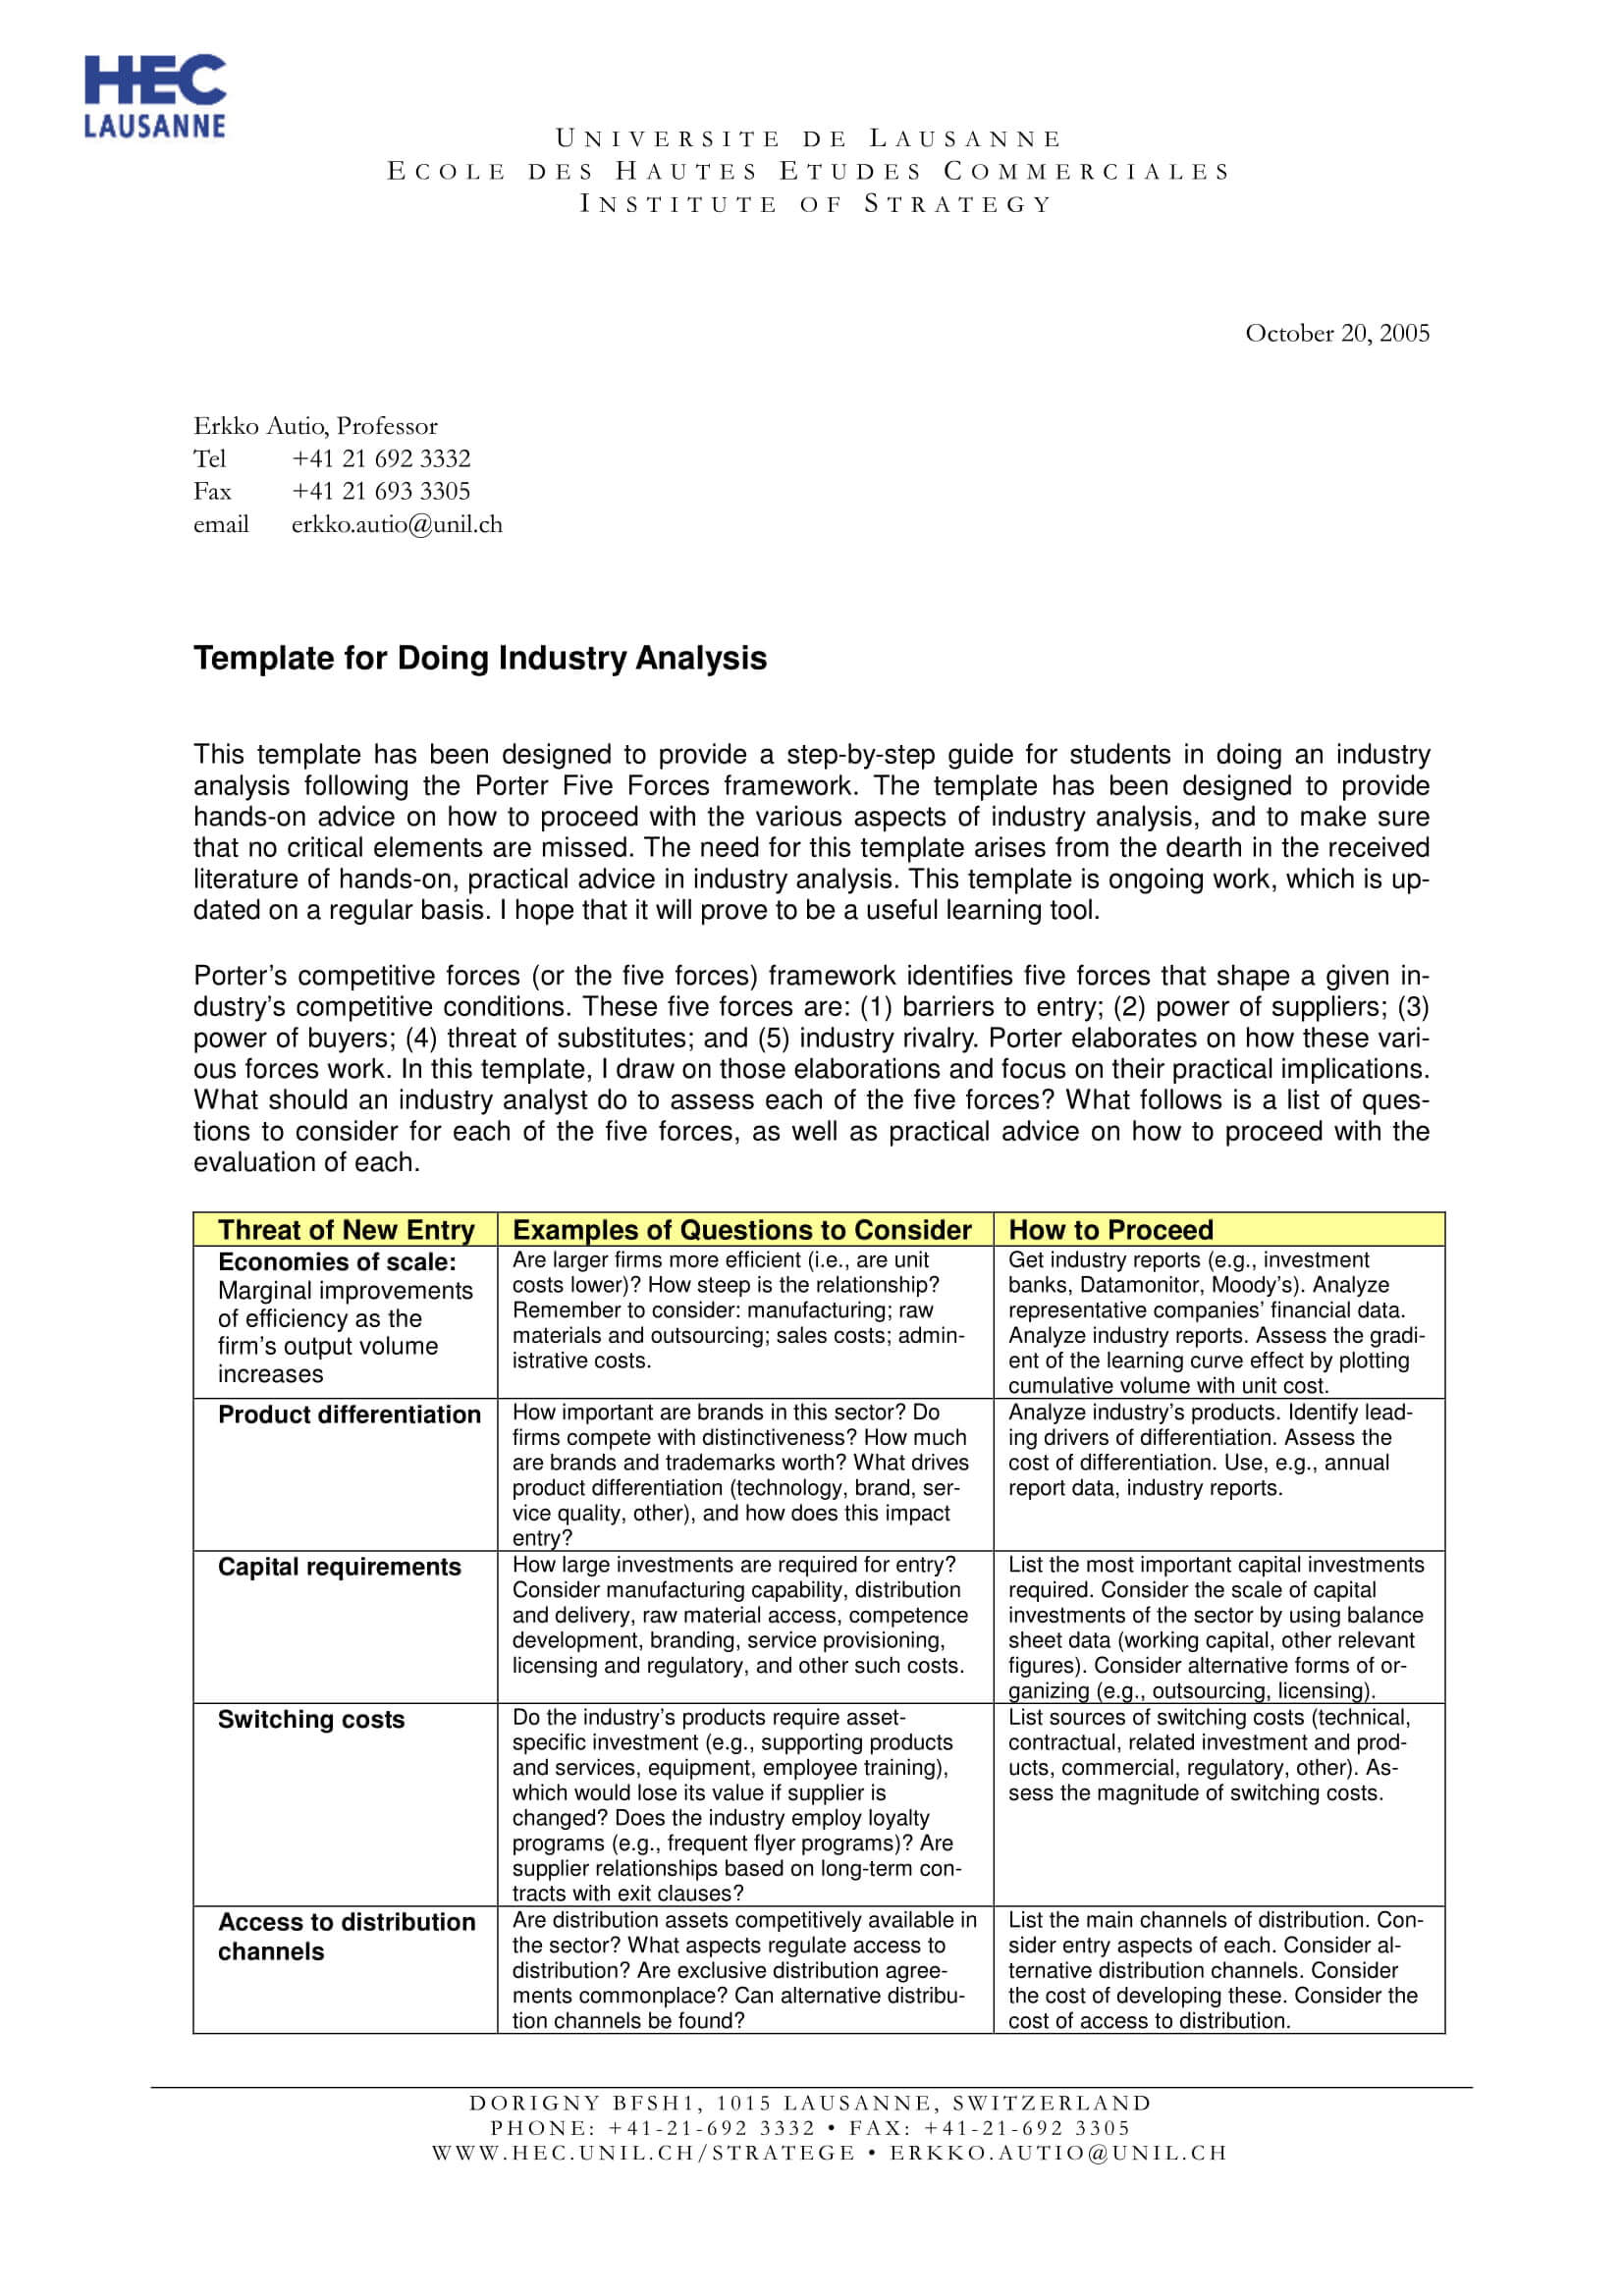 9+ Industry Analysis Examples - Pdf | Examples in Industry Analysis Report Template